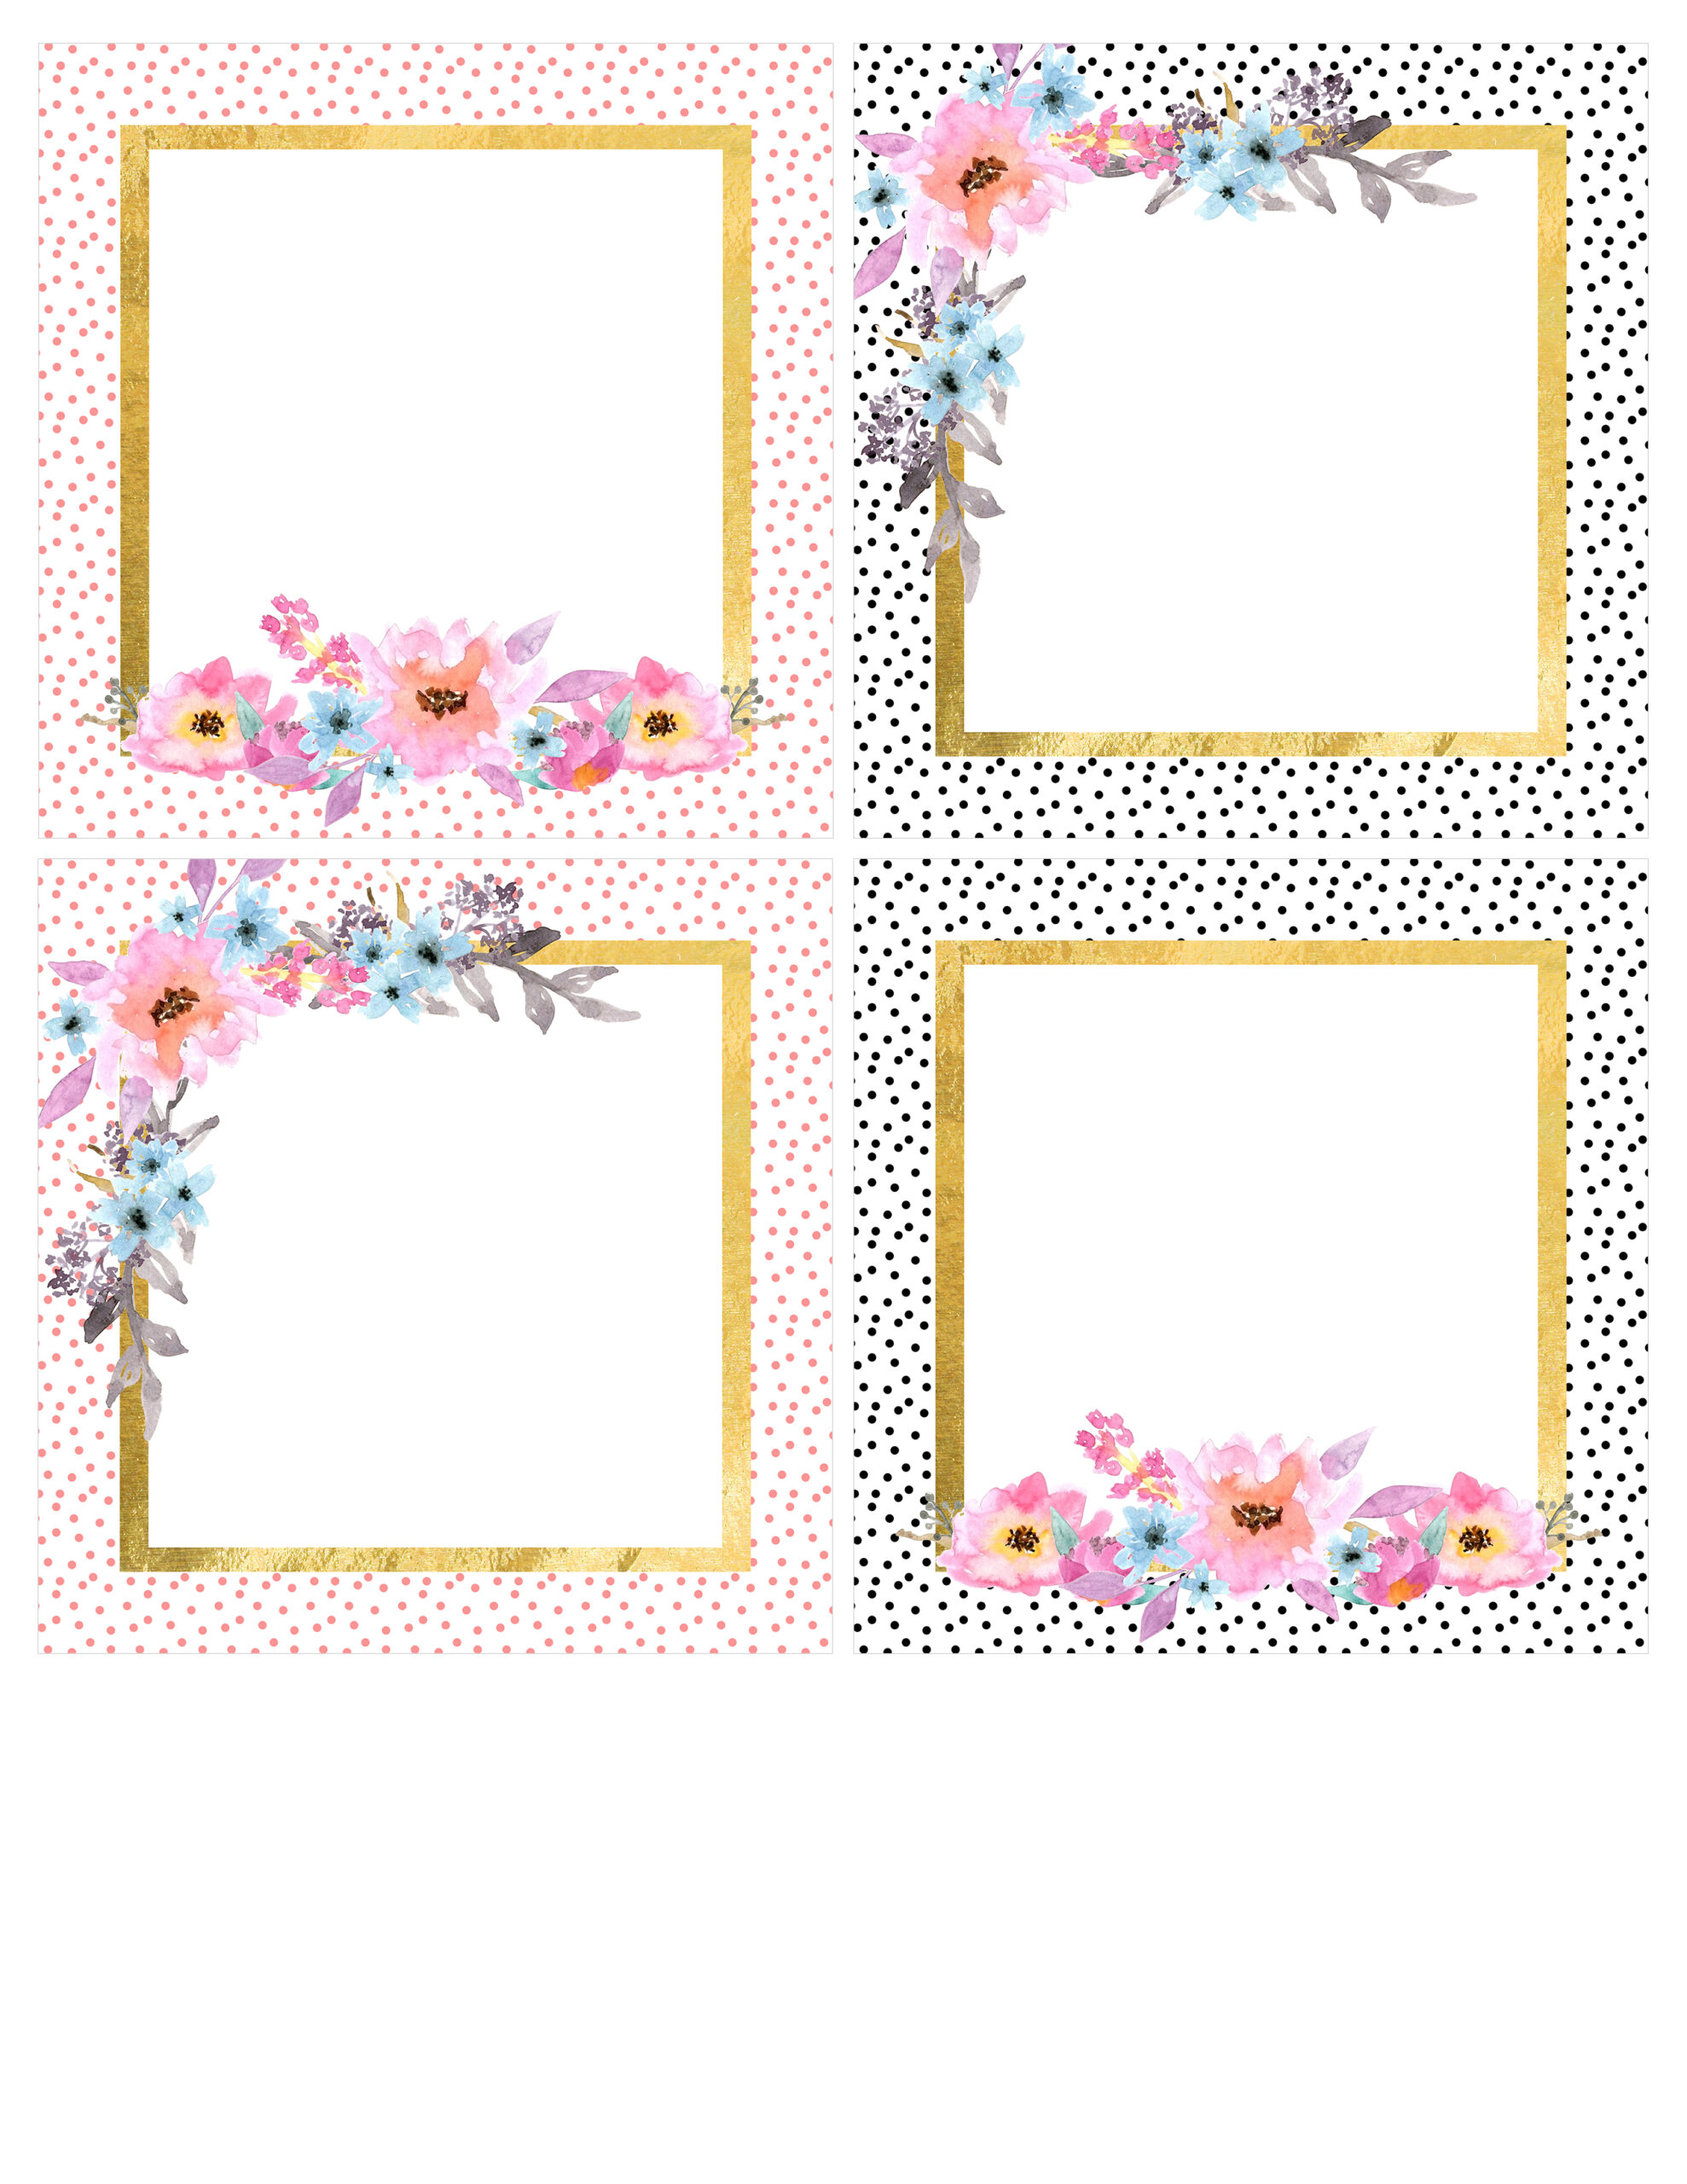 It's just a photo of Crafty Printable Scrapbook Pages